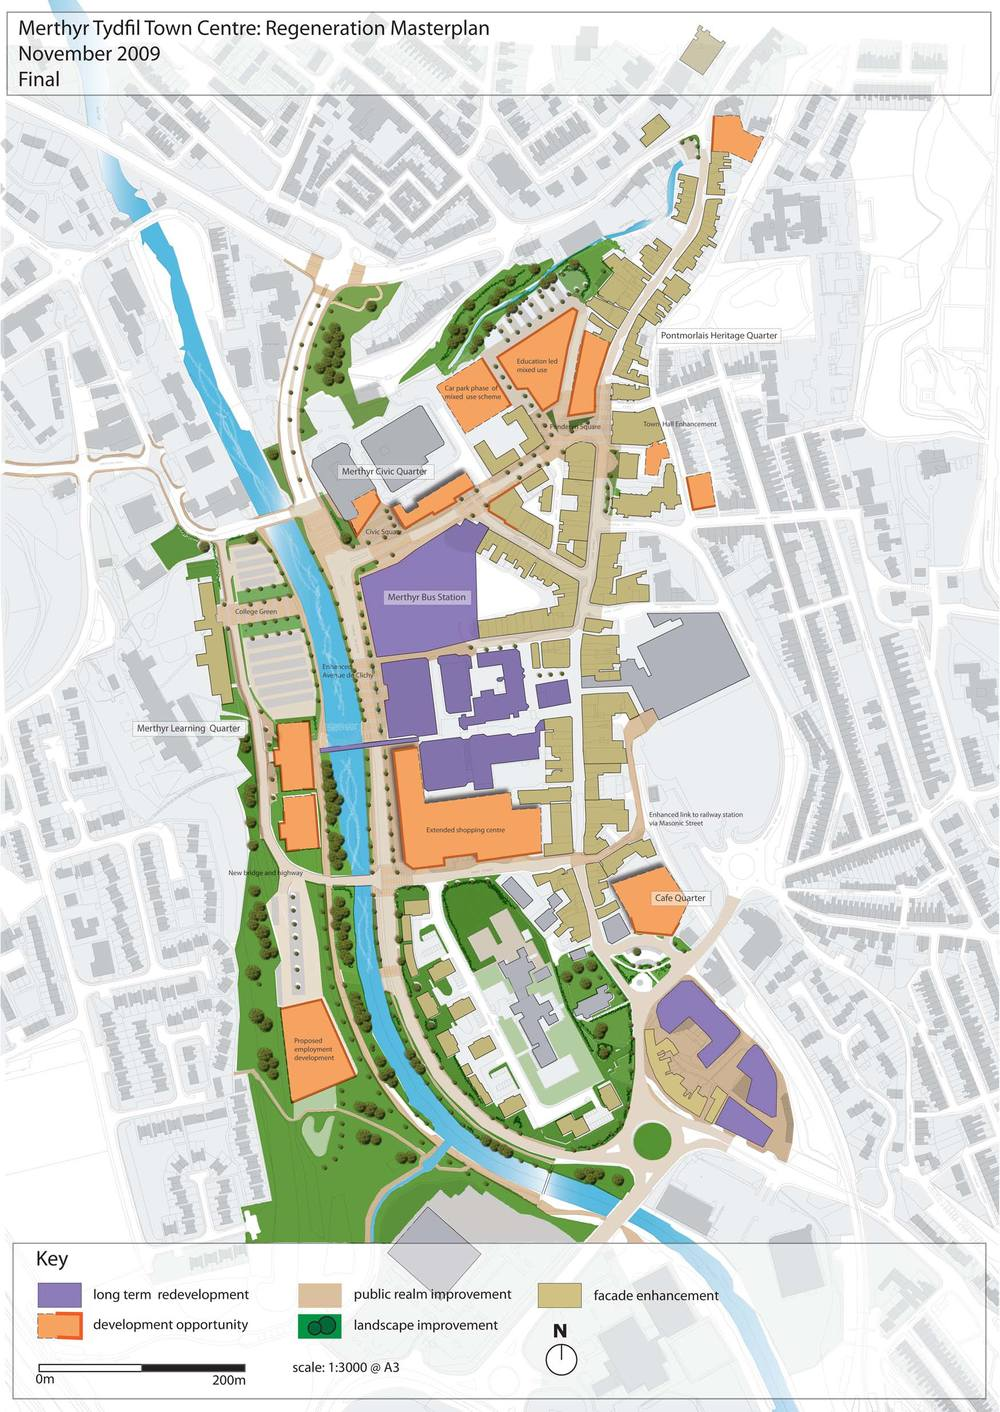 Masterplan vision for Merthyr Tydfil town centre